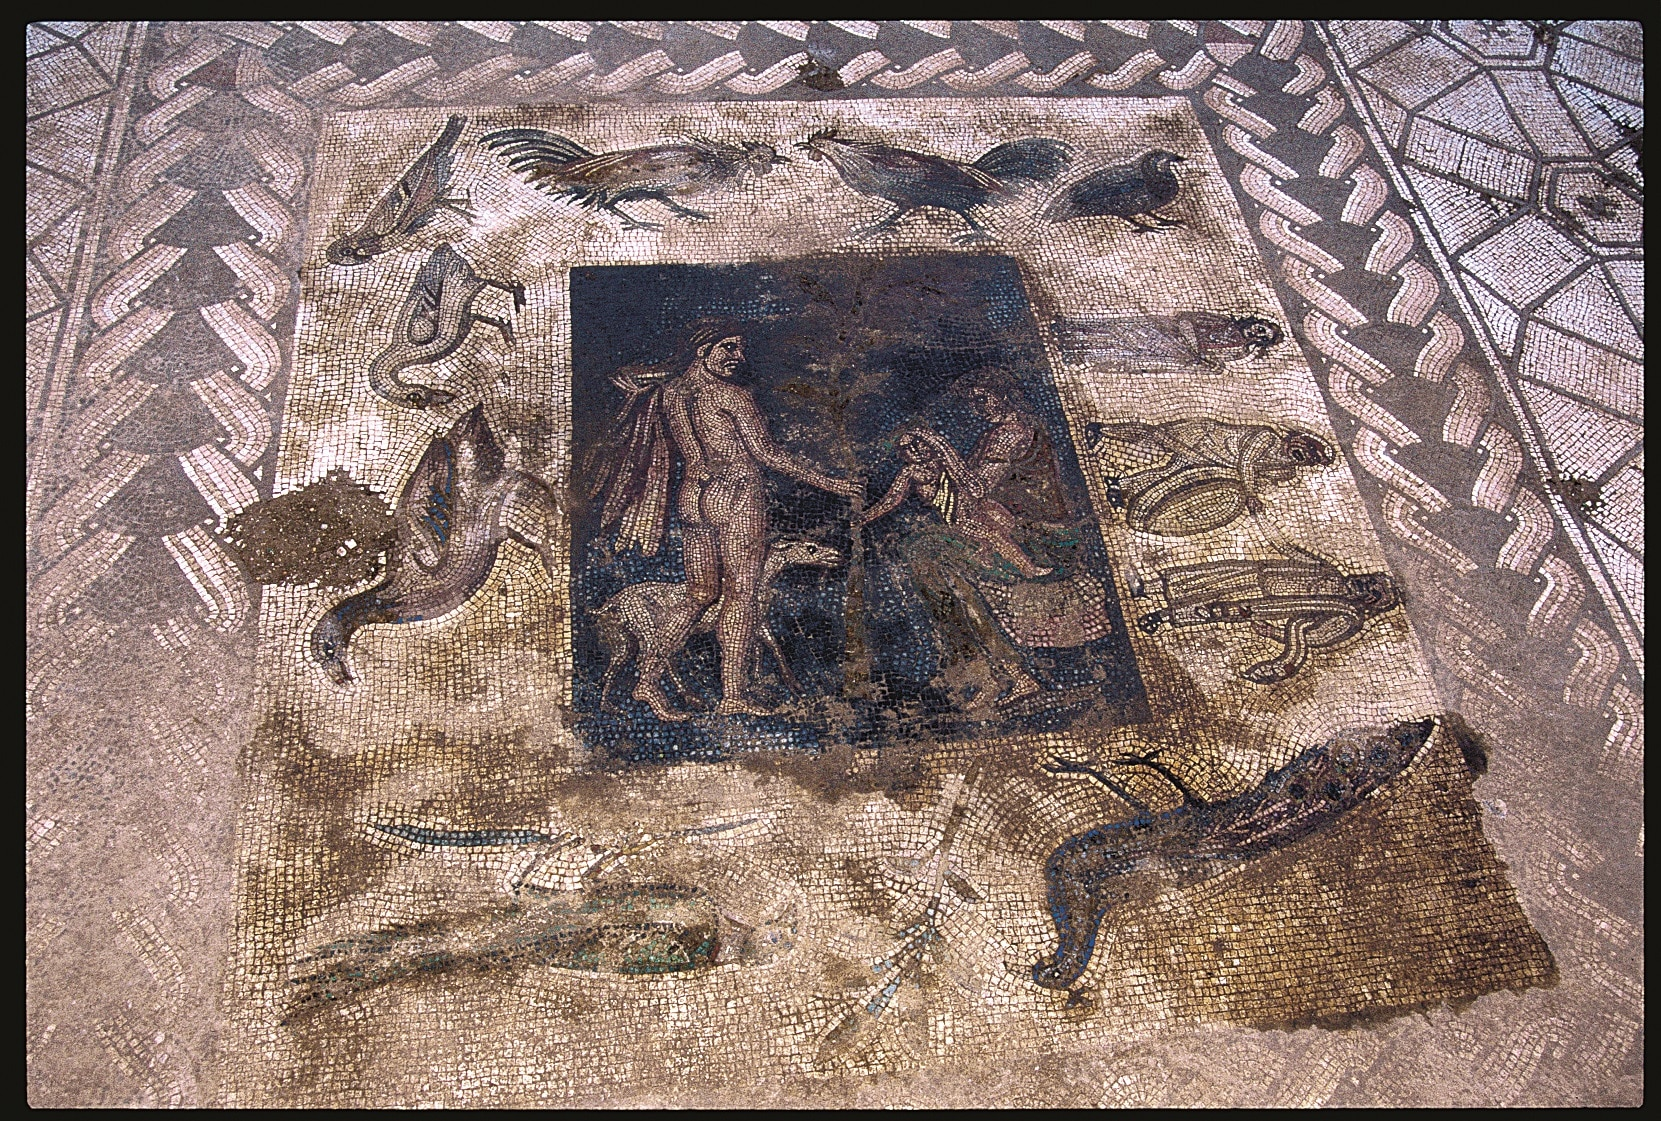 Mosaic floor with scene inspired by Bacchus